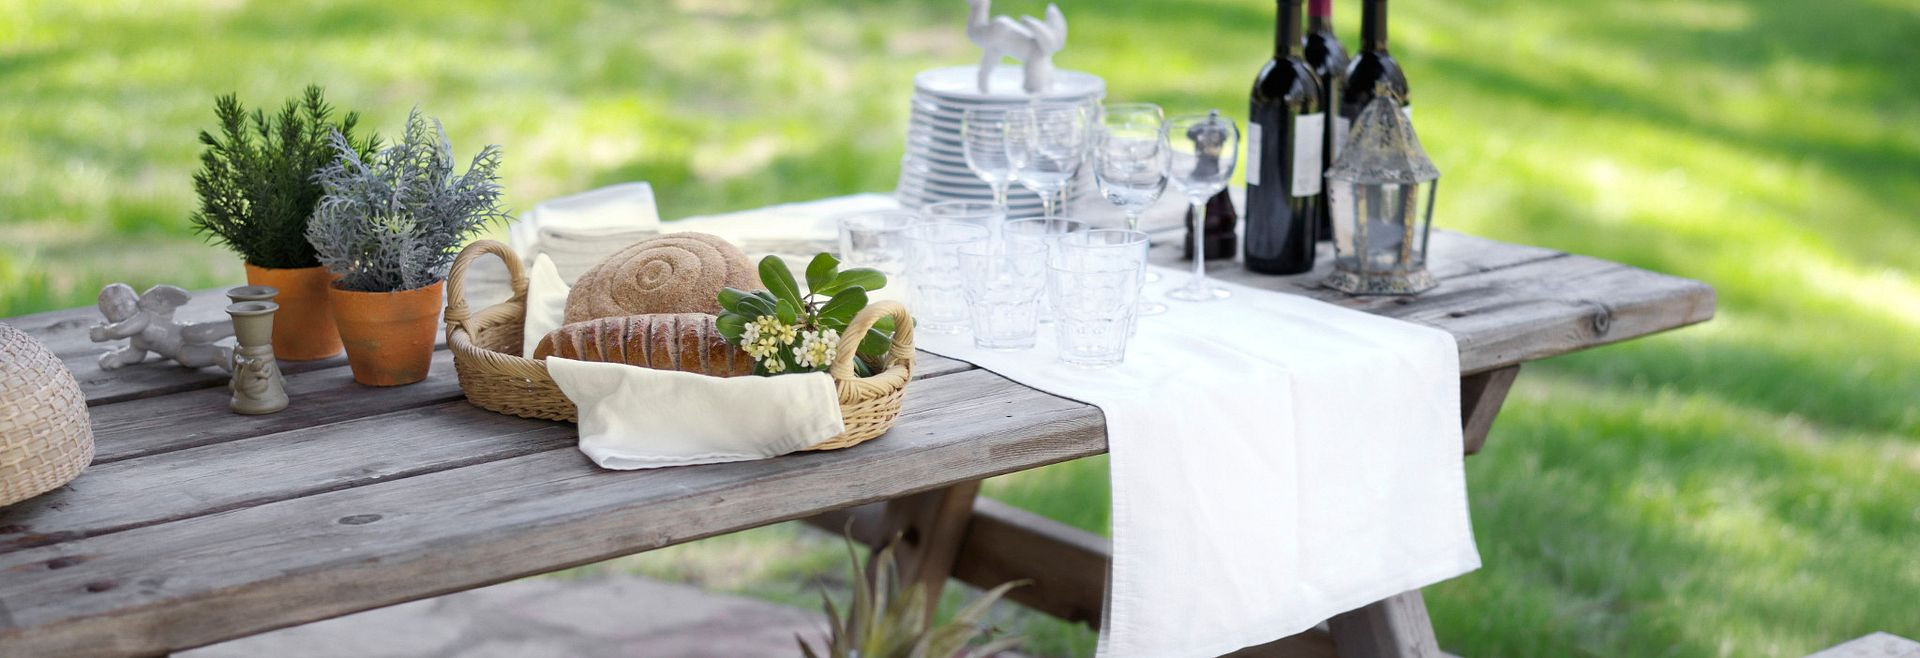 Picnic with table, basket of fruits, vegetables, and drinks